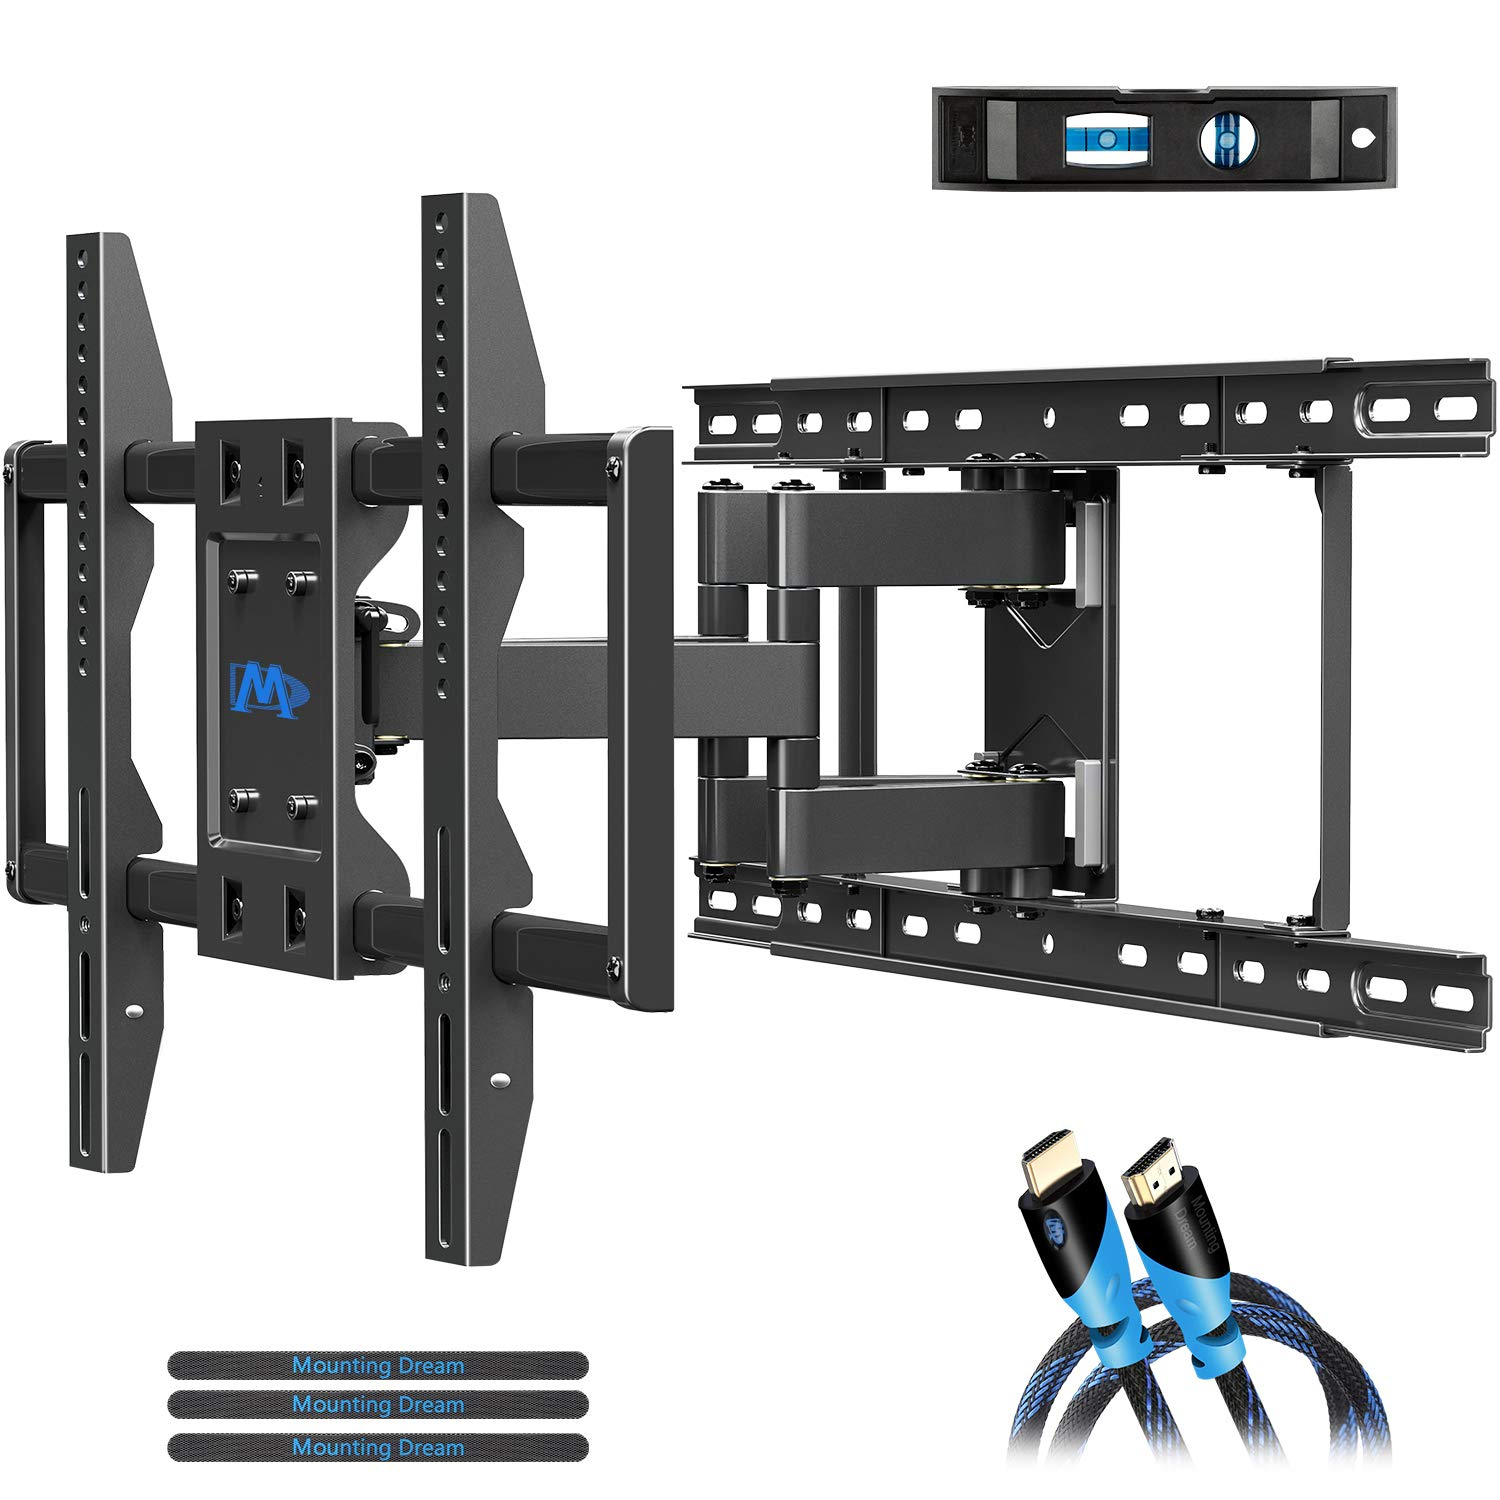 Mounting Dream TV Wall Mounts TV Bracket for 42-70 Inch TVs, Premium TV Mount, Full Motion TV Wall Mount with…